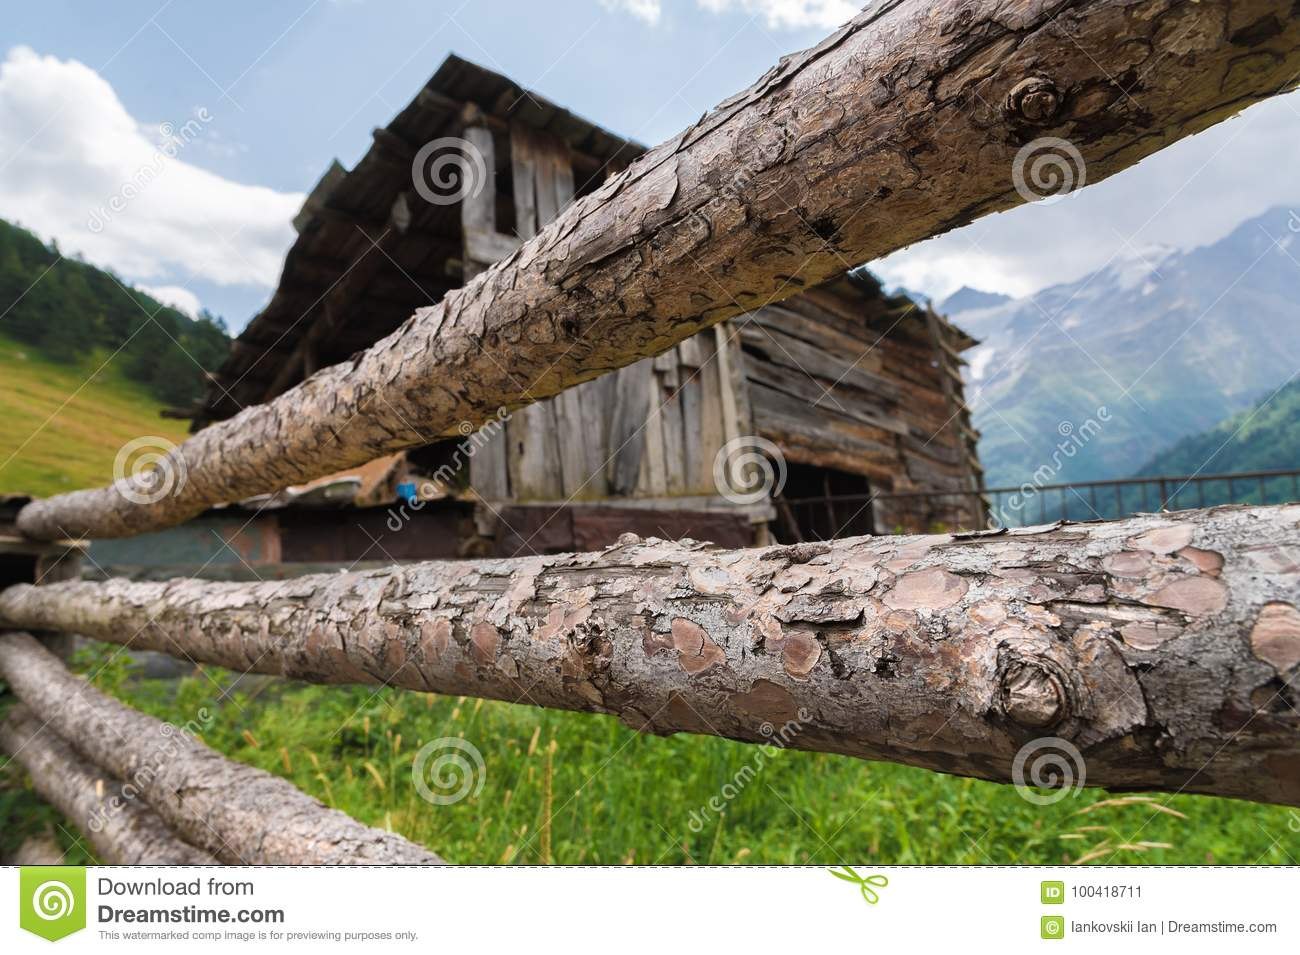 Wooden Vintage Fence On The Background Of An Old Wooden Barn In A